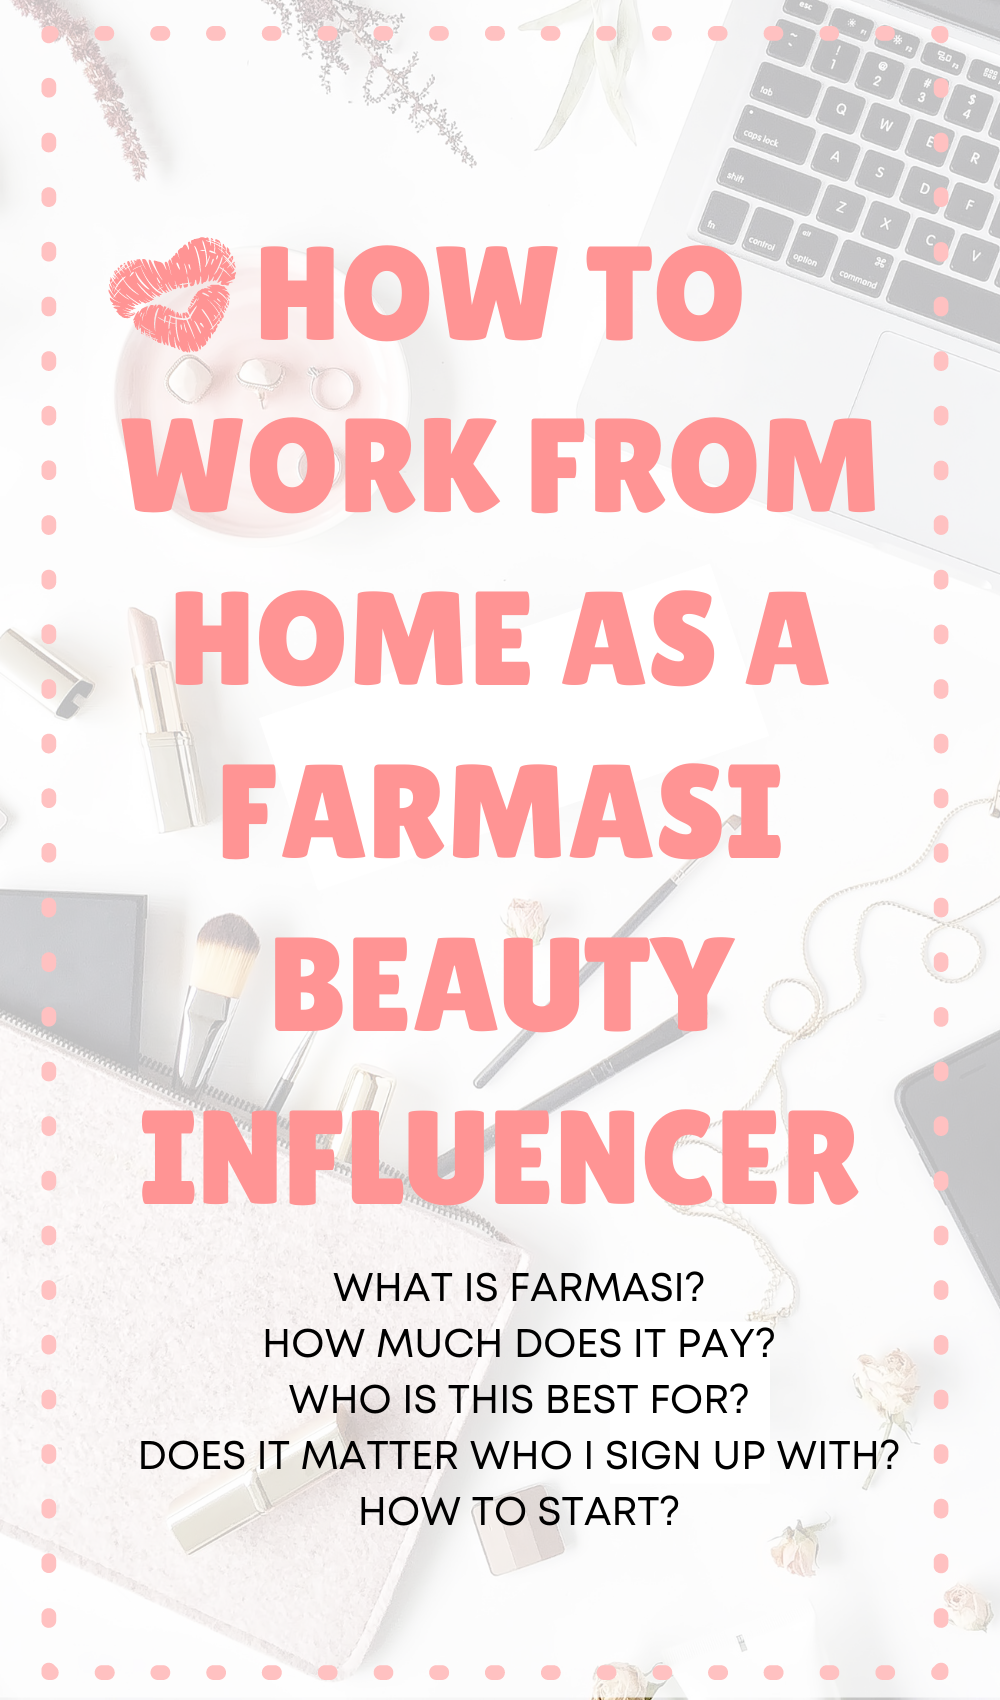 How To Make Money As A Farmasi Beauty Influencer Smart Mom Blogger Work From Home Mom Lifestyle Blog